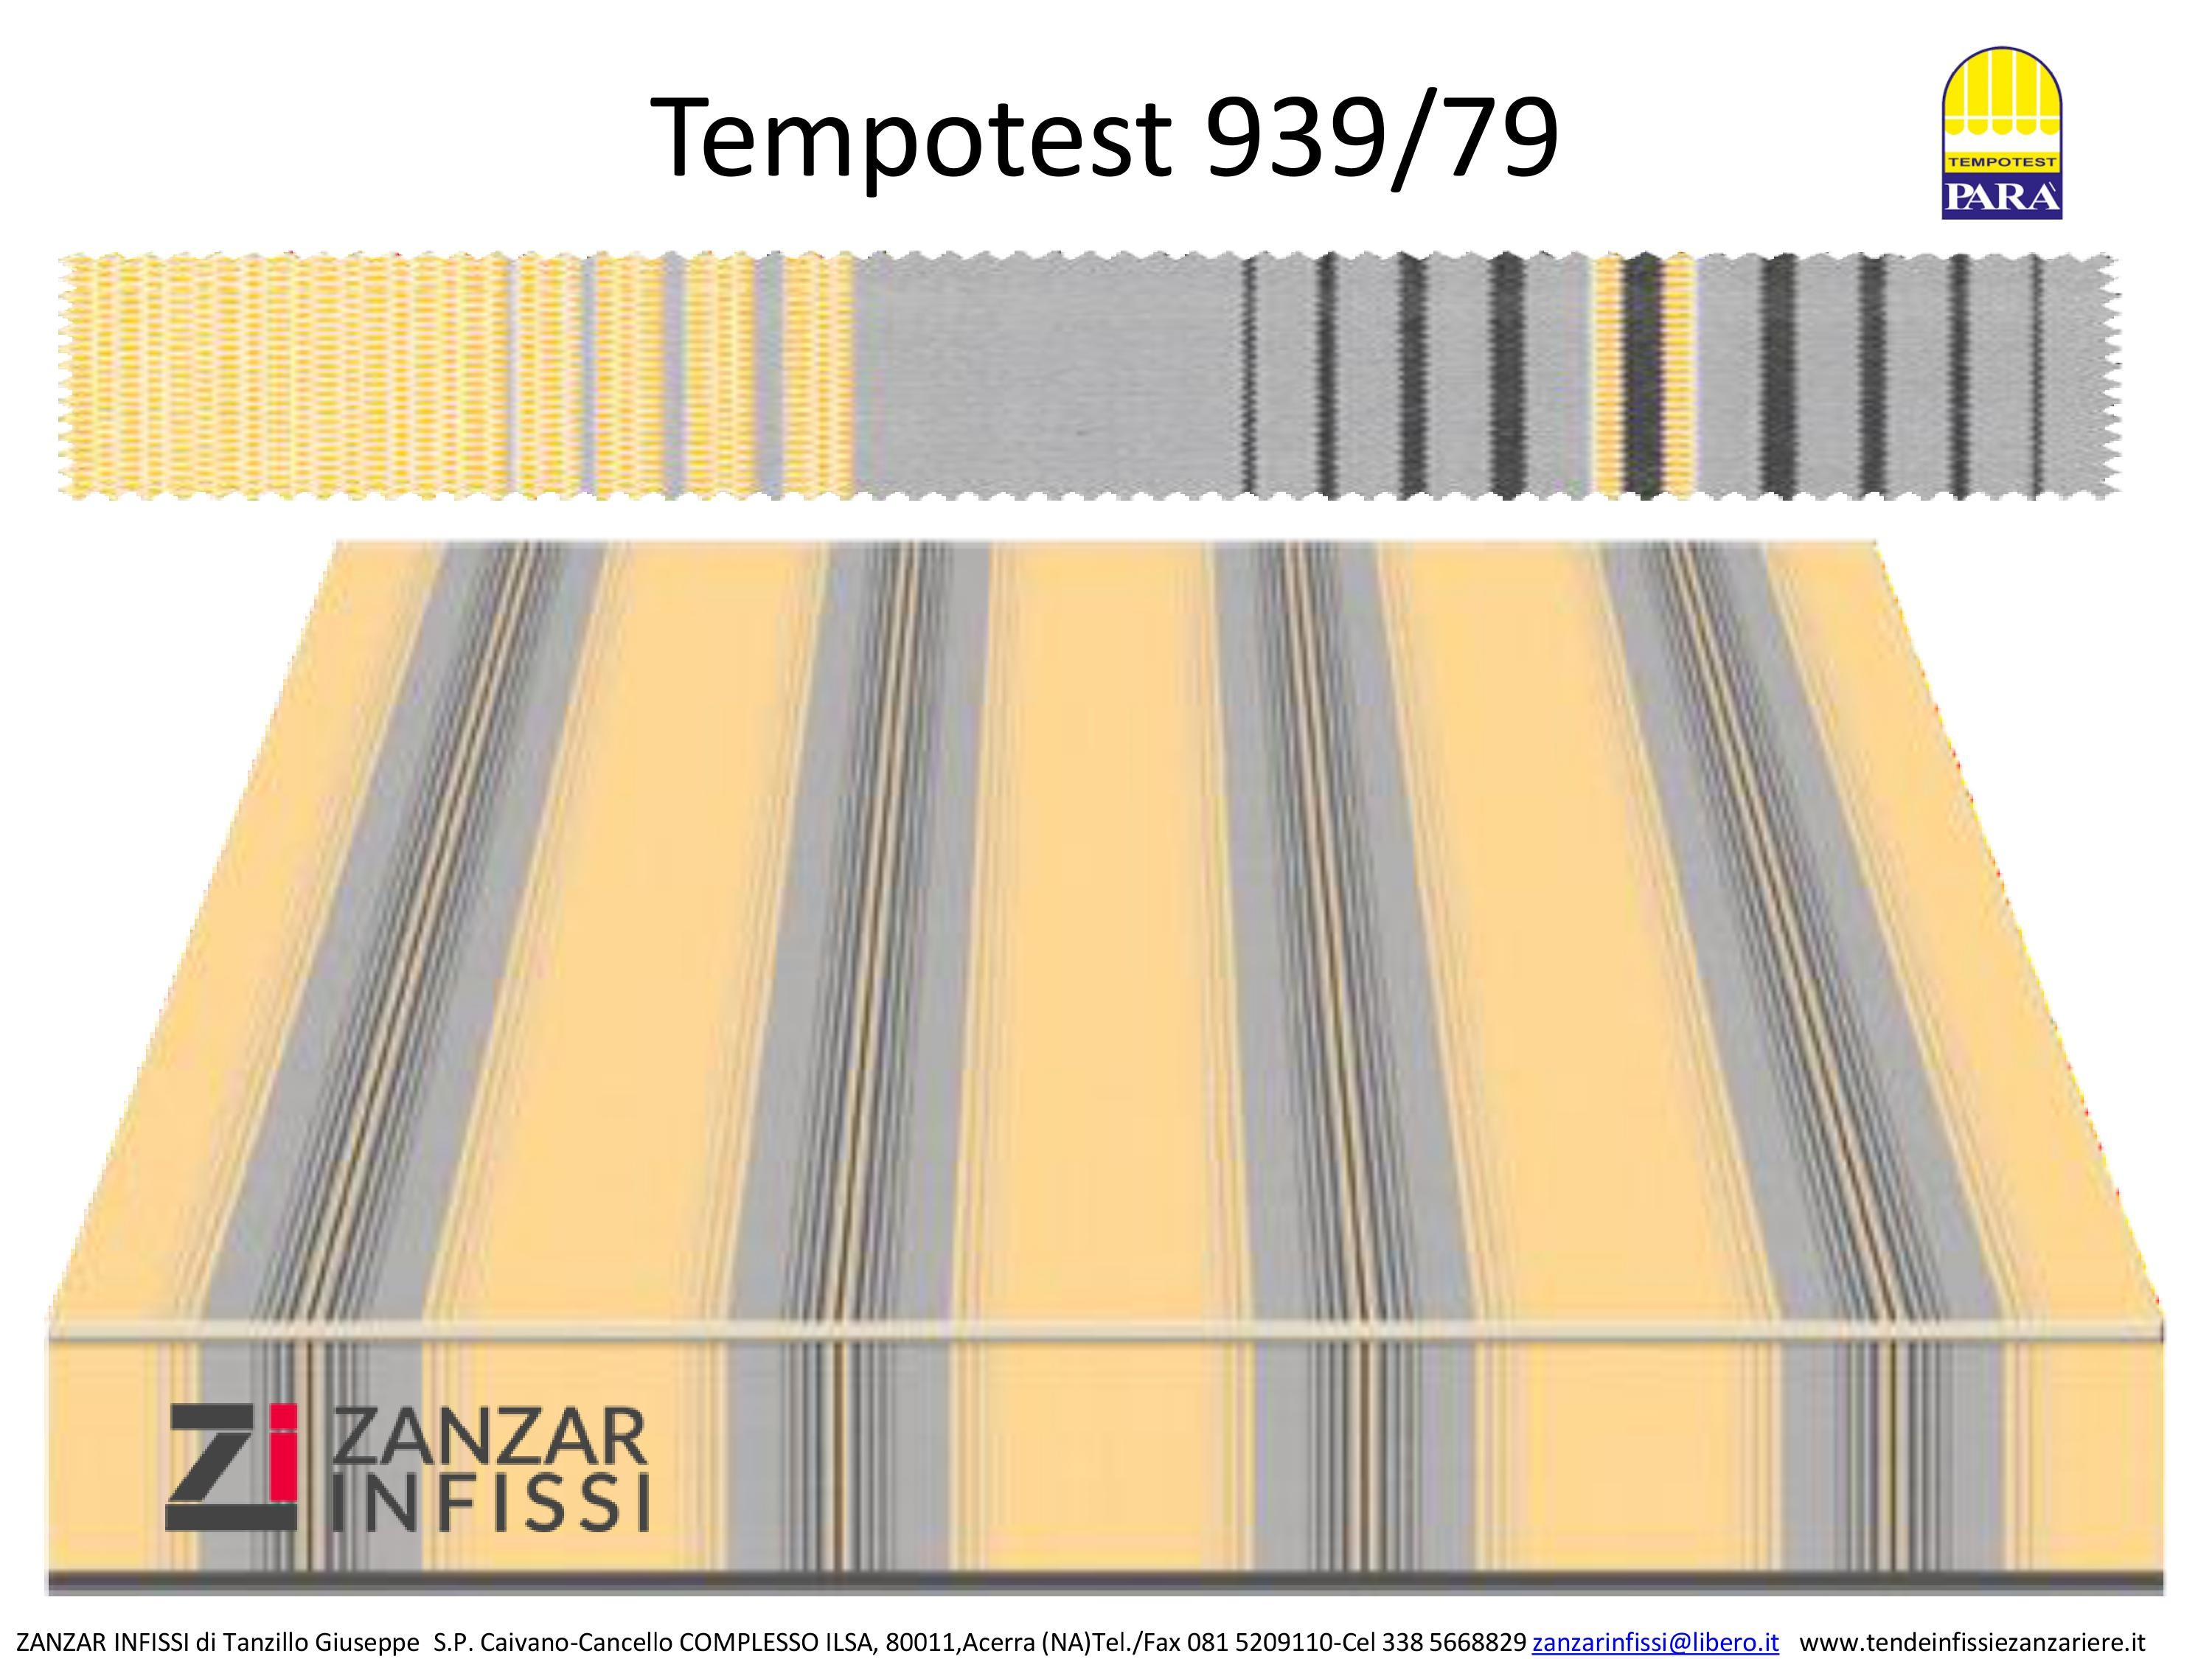 Tempotest 939/79